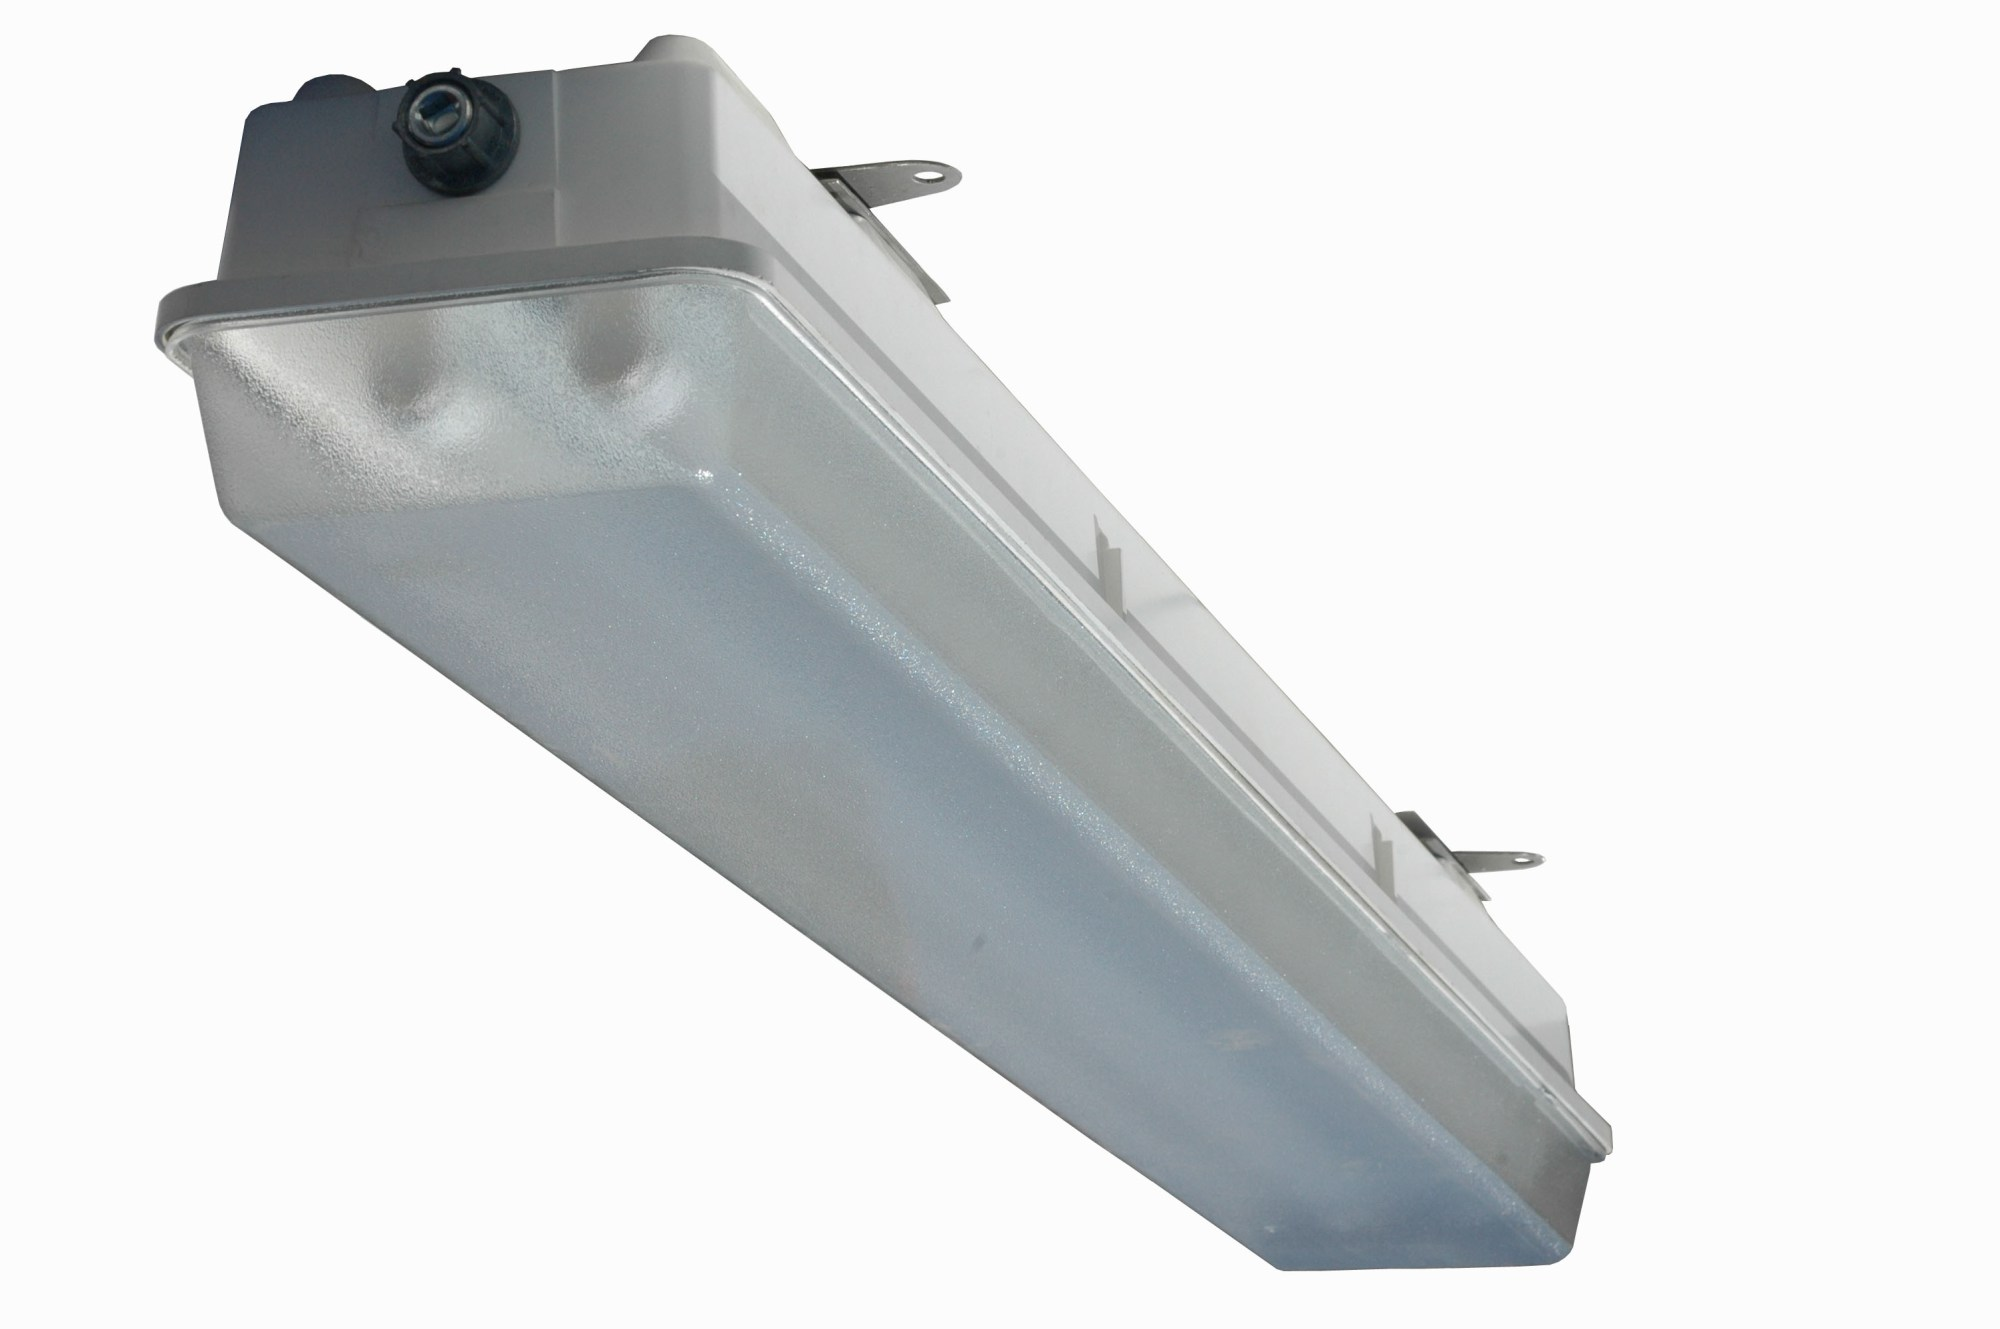 hight resolution of class 1 division 2 emergency led light with emergency backuppower outage emergency backup operation led light fixture